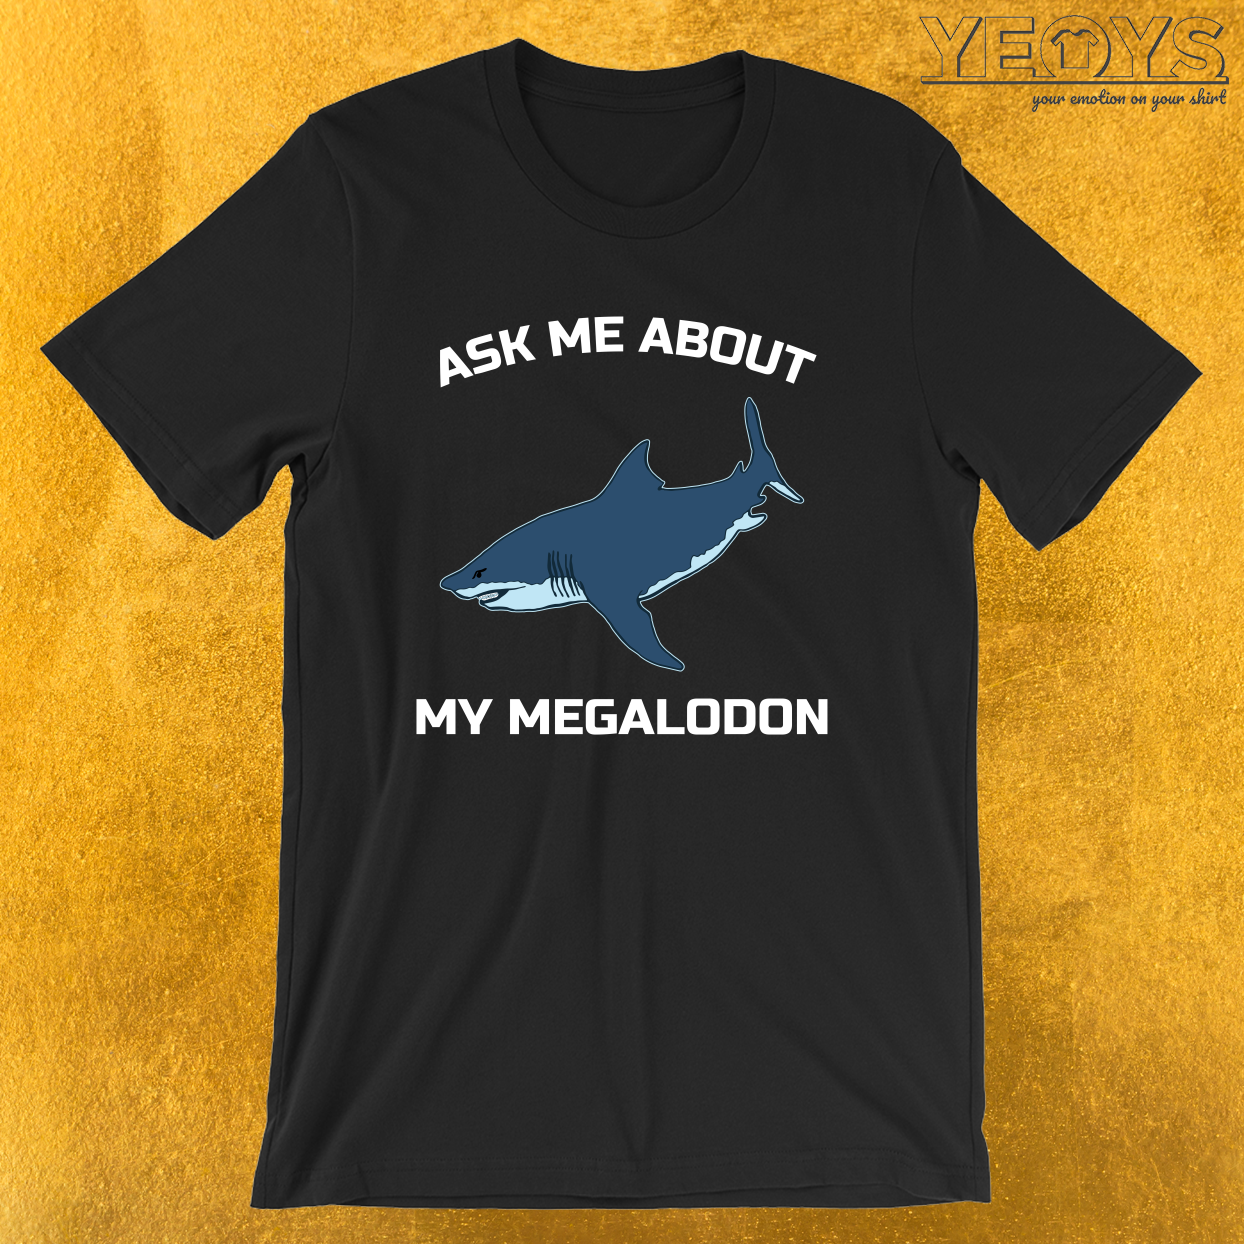 Ask Me About My Megalodon – Funny Megalodon Shark Tee